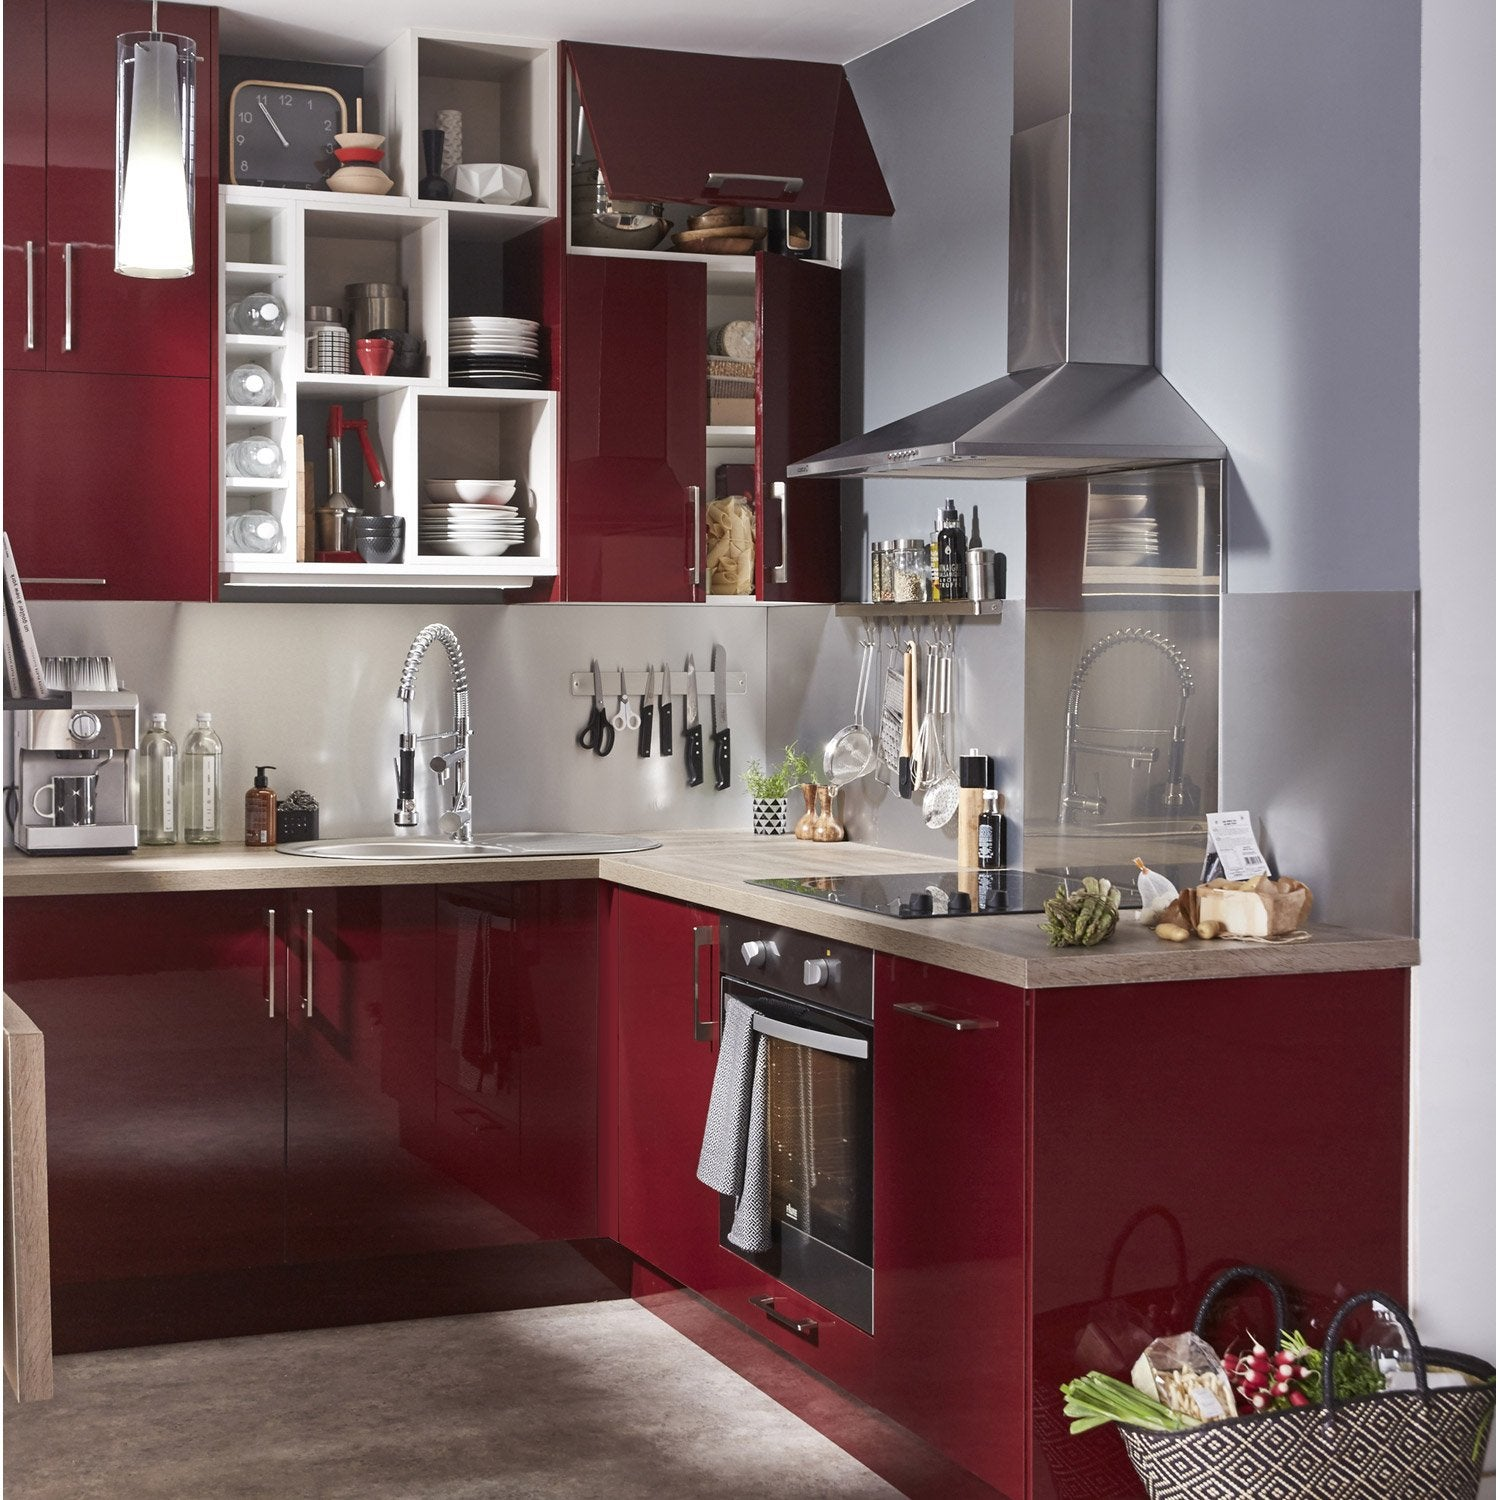 Meuble de cuisine rouge delinia griotte leroy merlin for Meuble hotte leroy merlin